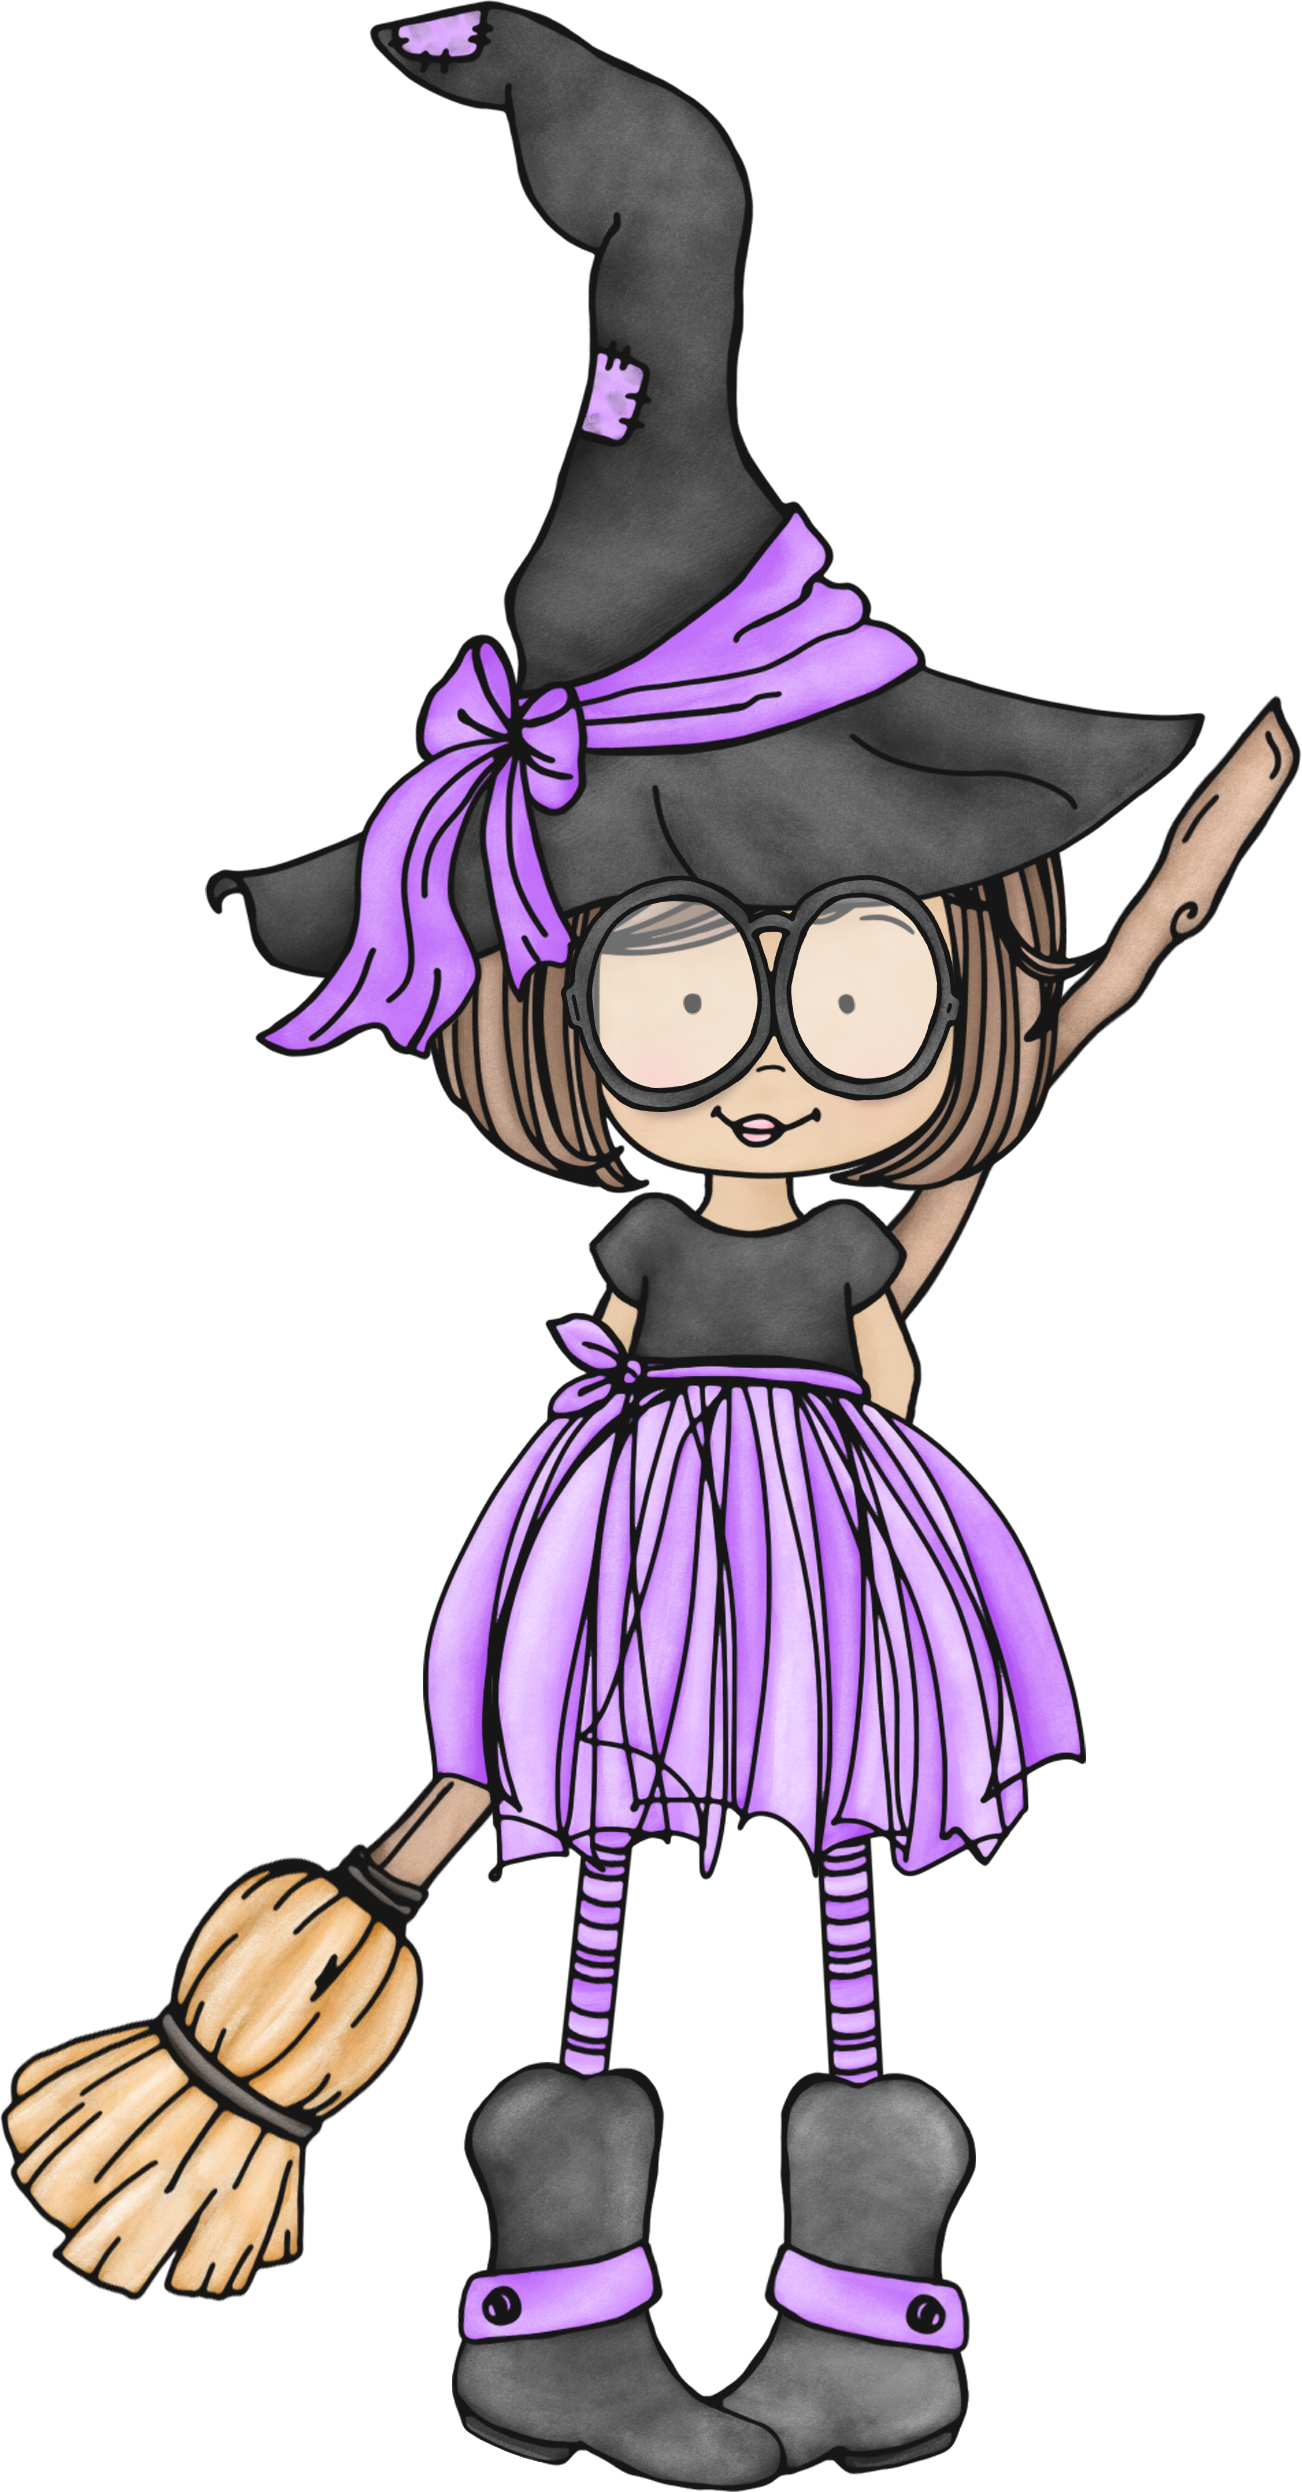 Spirit image clipart halloween clip transparent stock witch.quenalbertini: Cute little witch with glasses | Halloween ... clip transparent stock